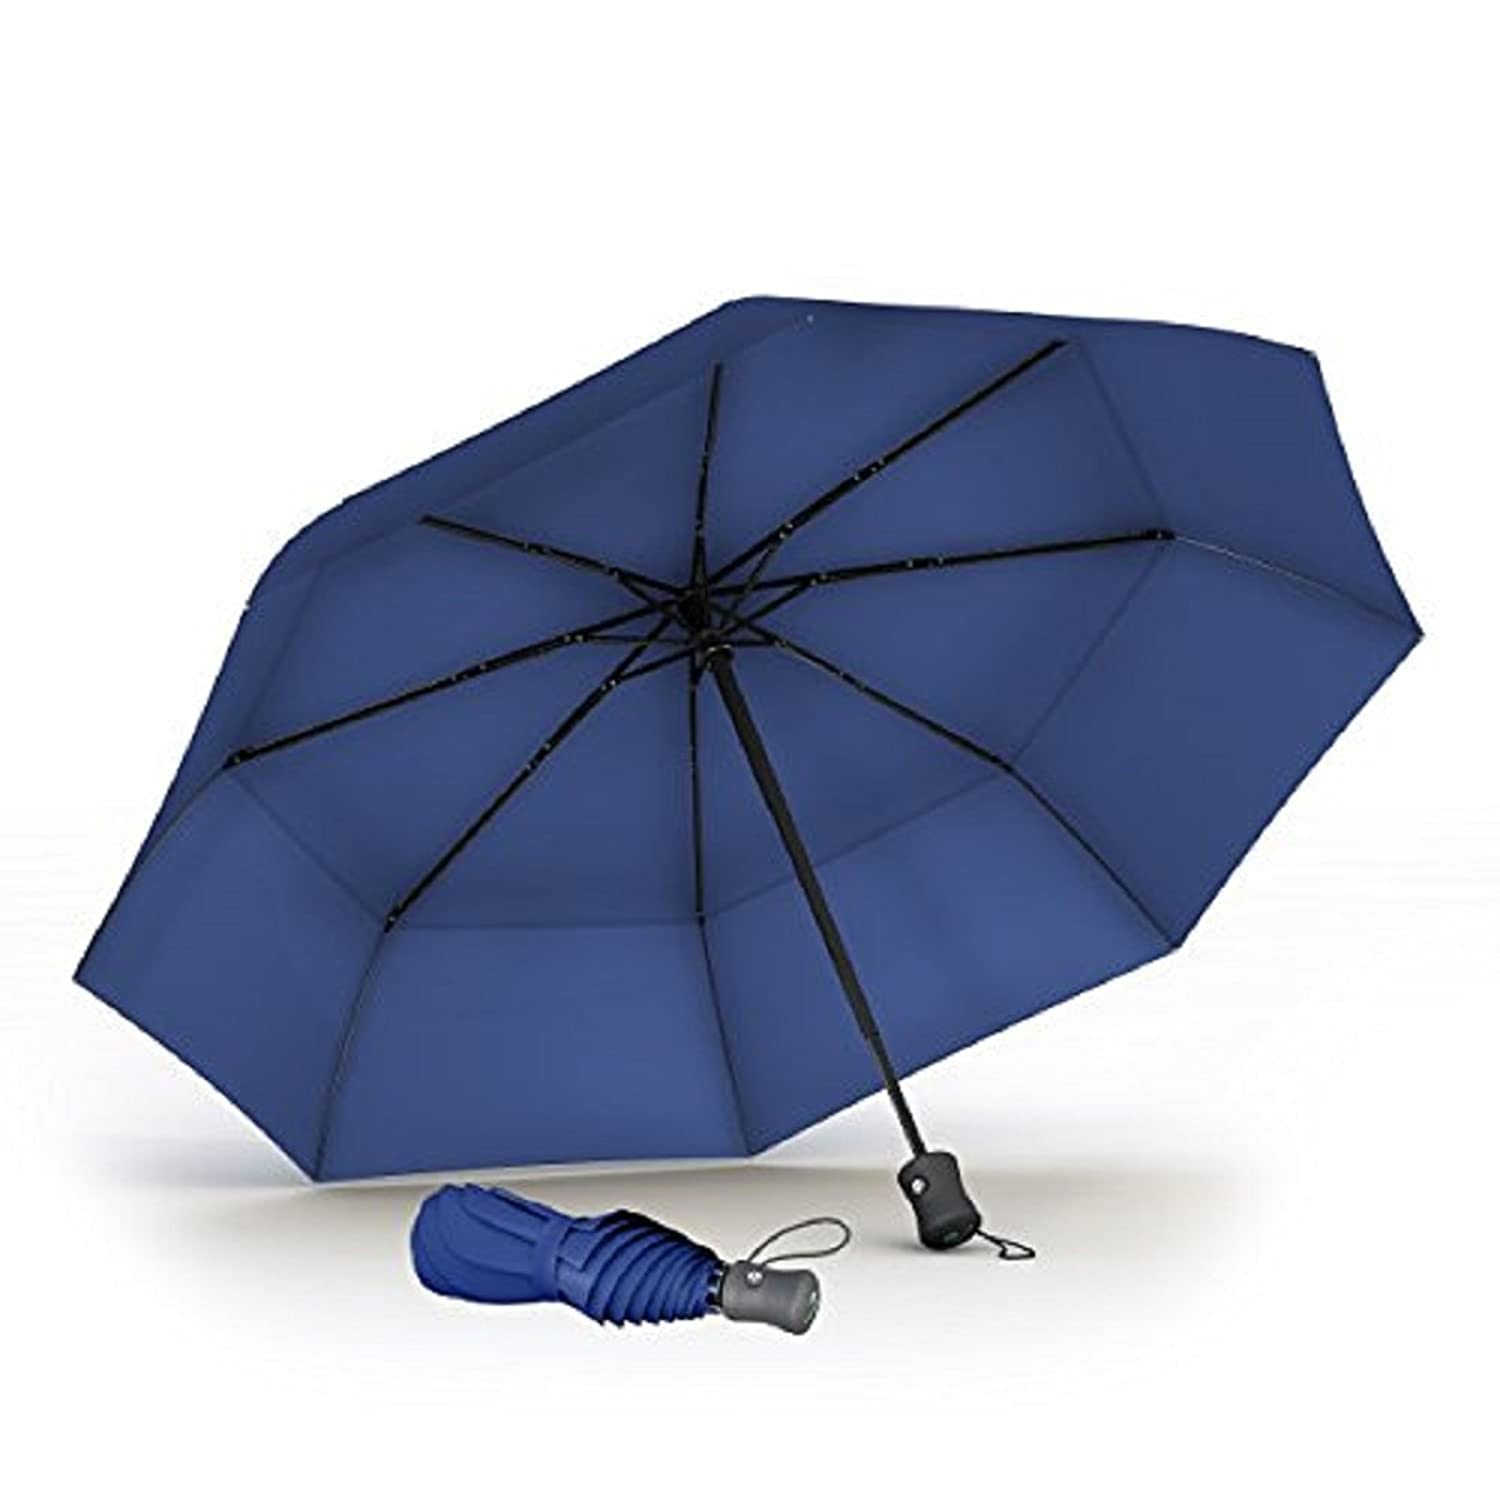 "Procella Travel Umbrella 42"" Compact Windproof Waterproof - Auto Open & Close - Foldable Umbrellas for Rain and Sun - Trusted Brand - Wind Tested in 46 MPH Winds - Virtually Unbreakable"